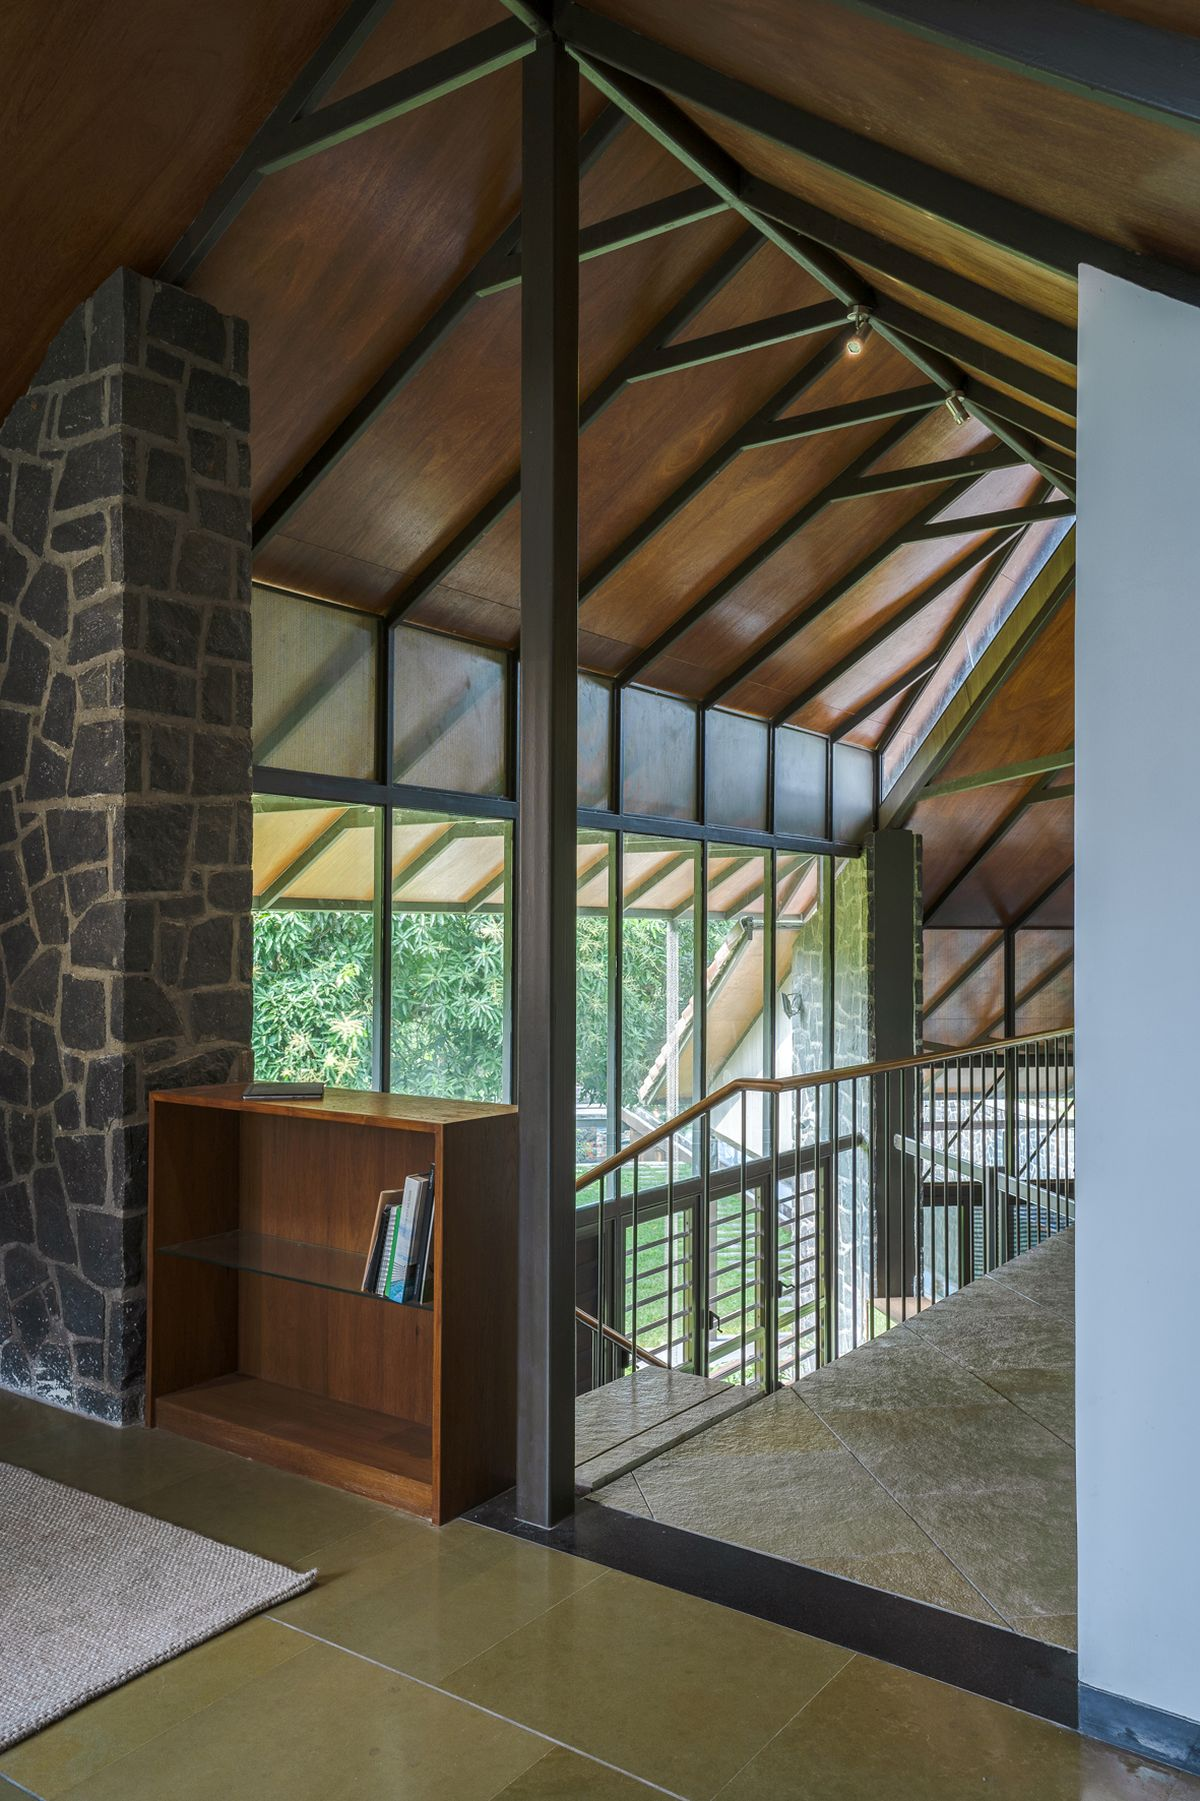 Dr Maani House 2020, at Koothattukulam, by RGB Architecture Studio 27